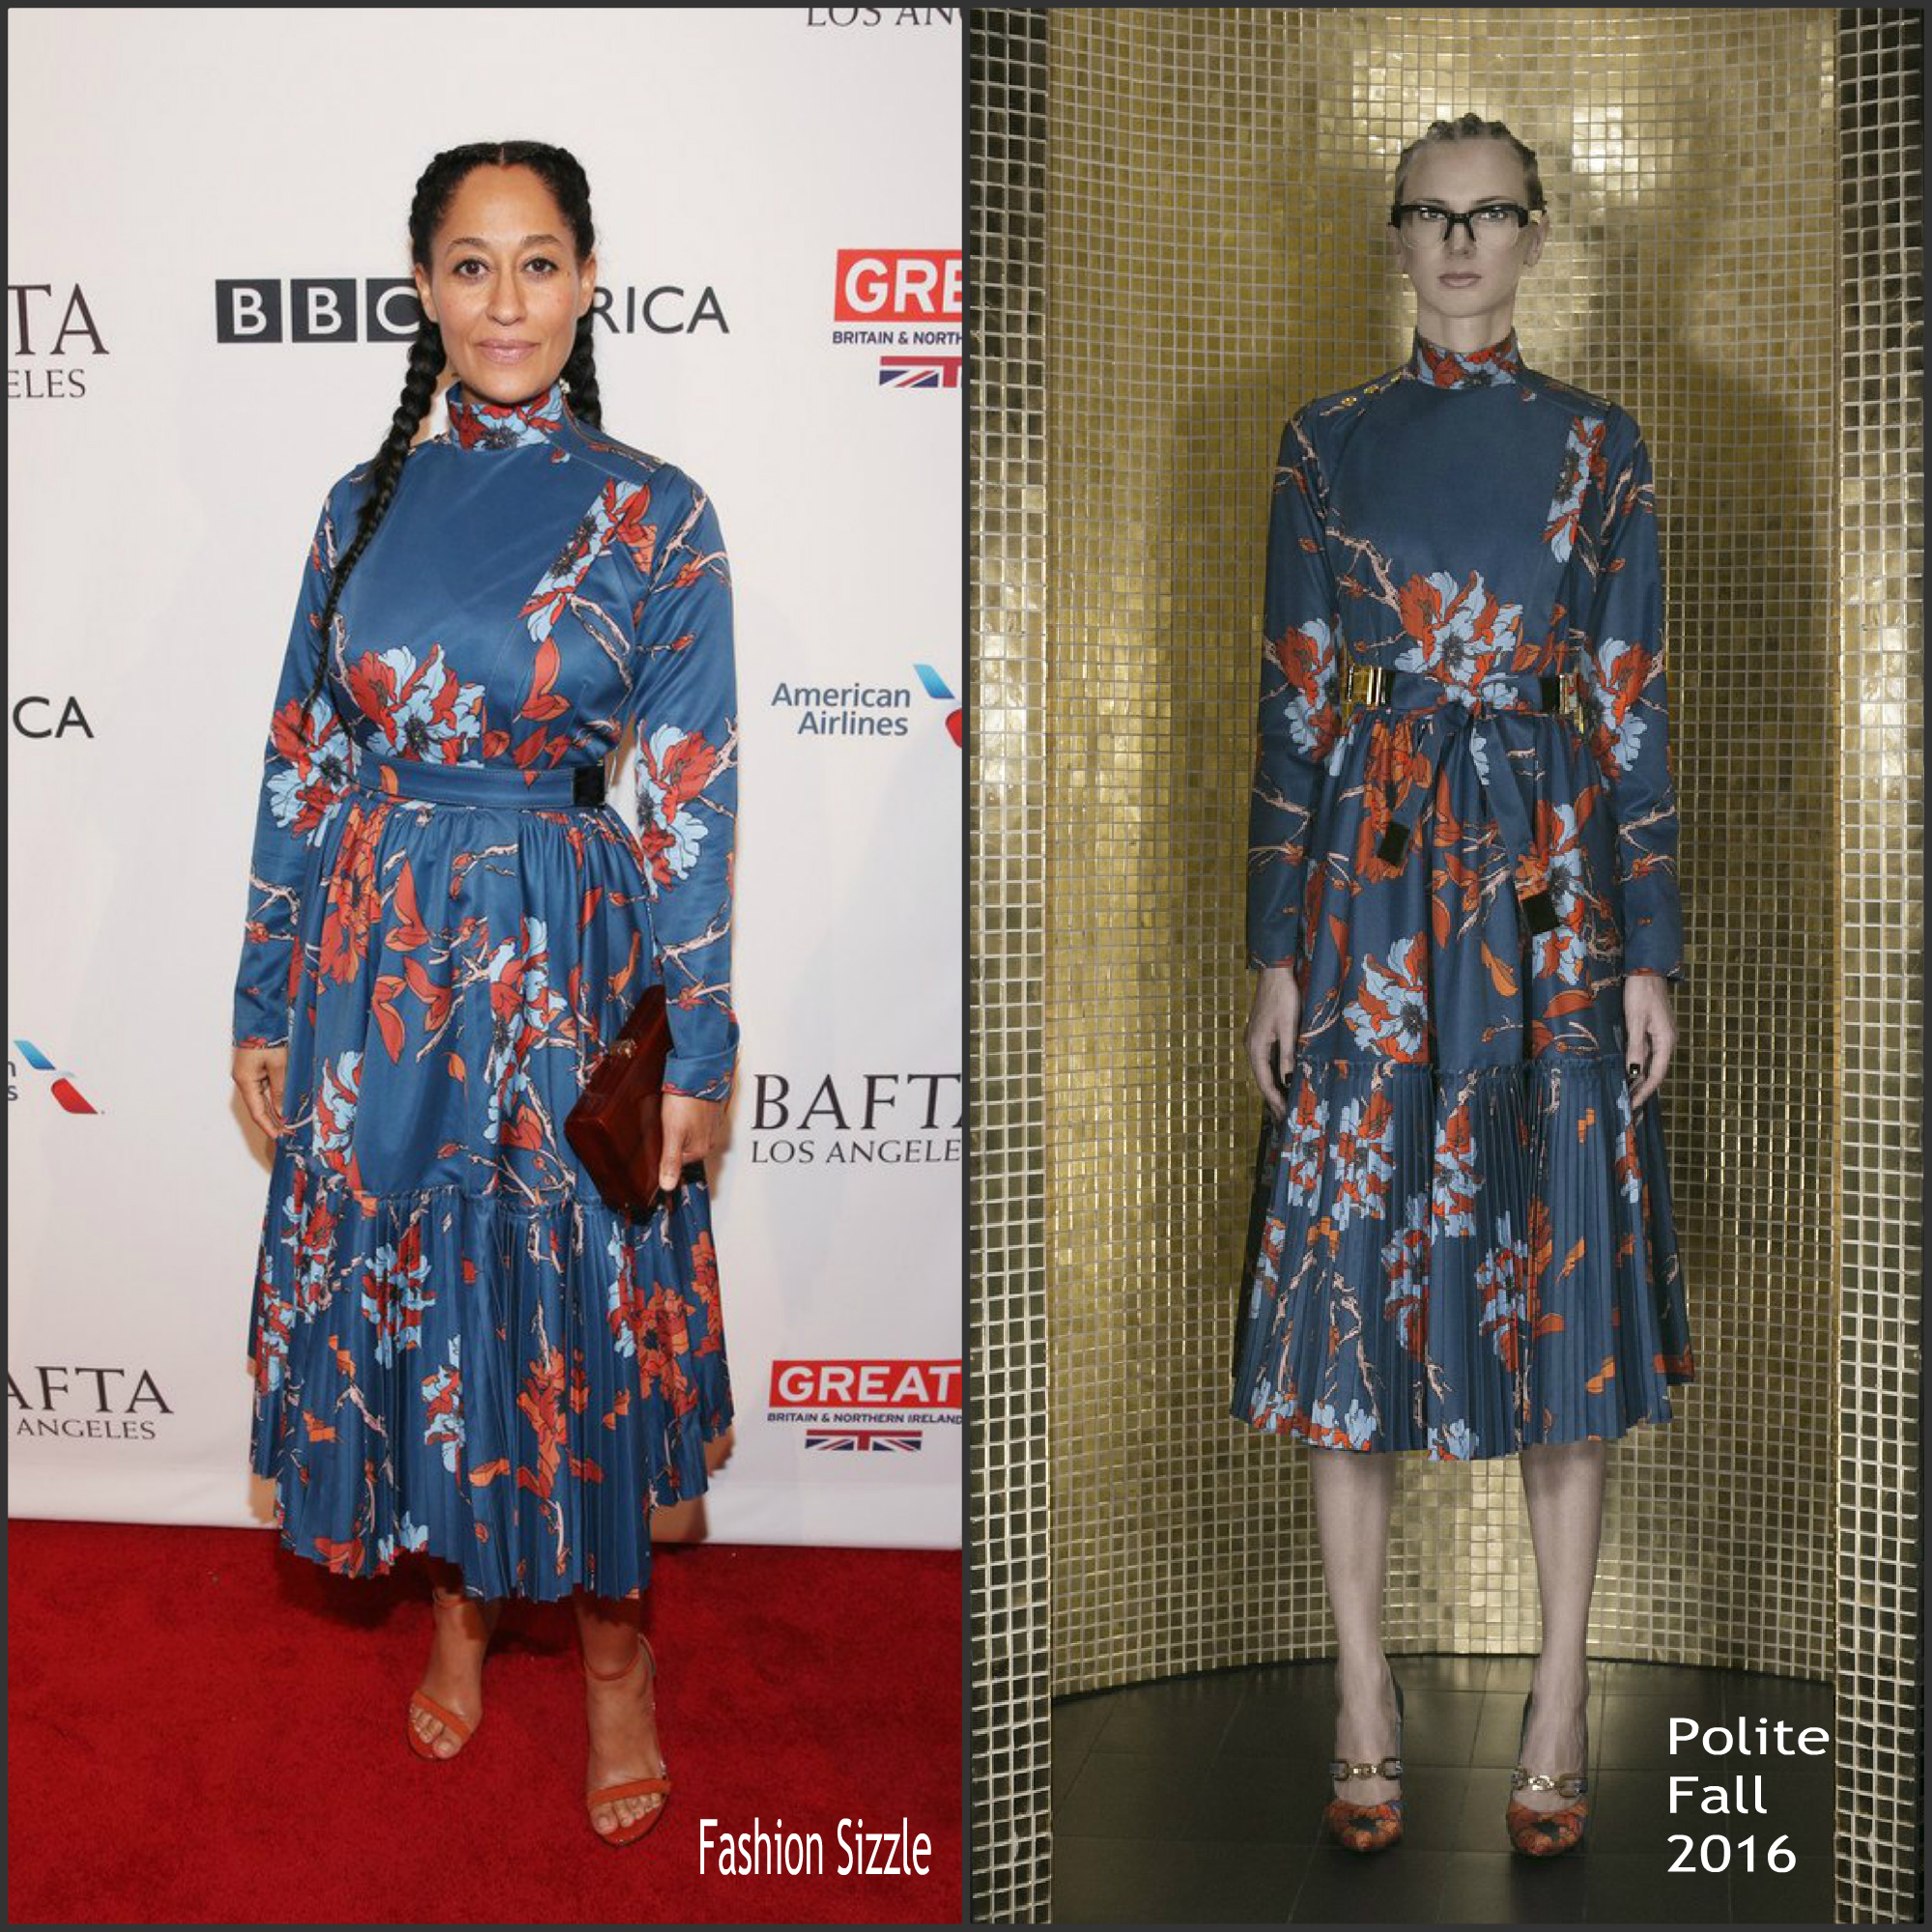 tracee-ellis-ross-at-2017-bafta-tea-party-in-la